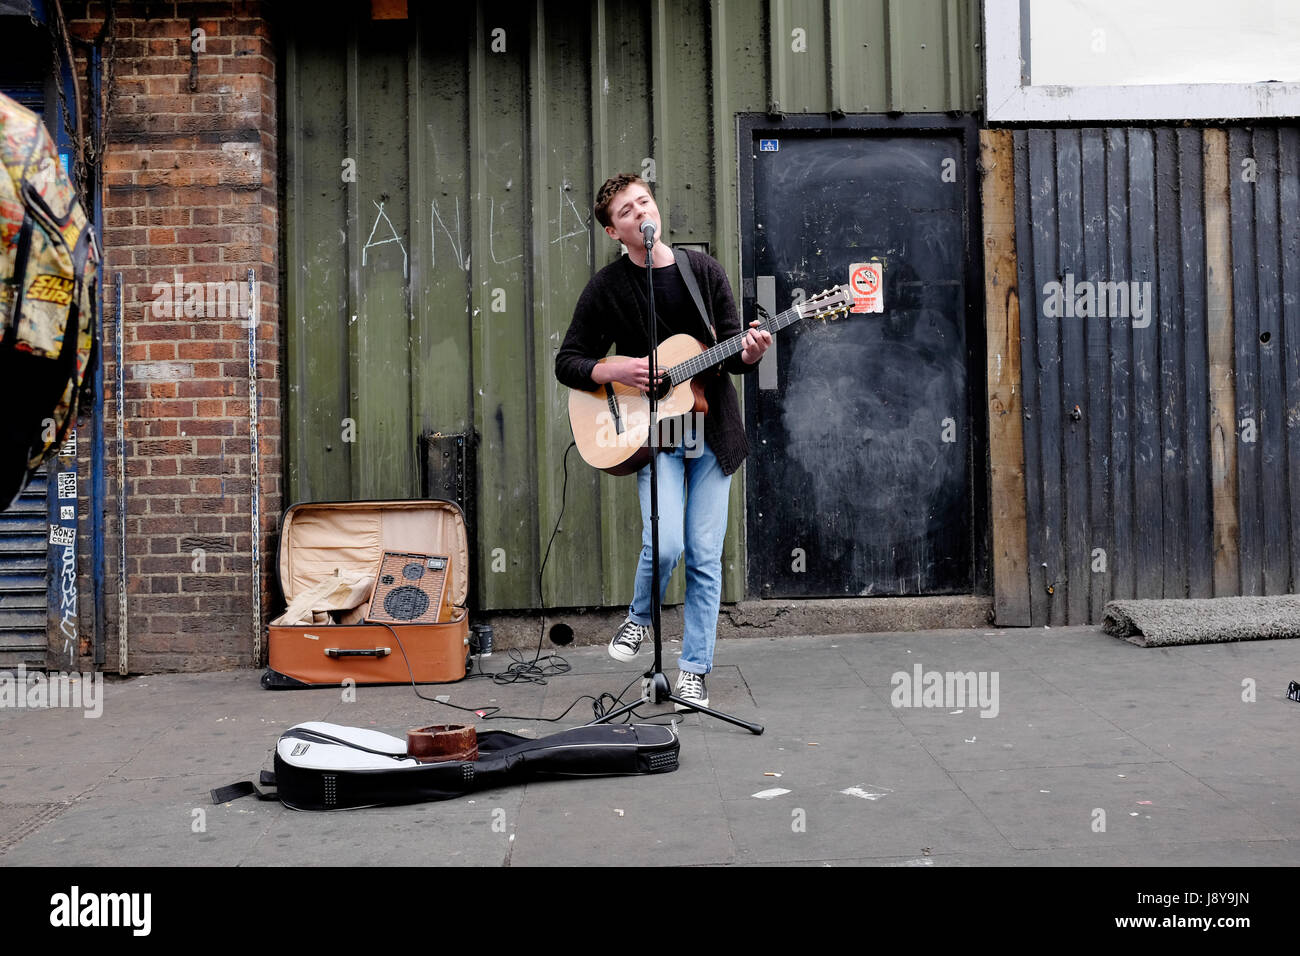 London Street Musician or Busker, playing guitar and singing on the streets of Camden Town, London. - Stock Image